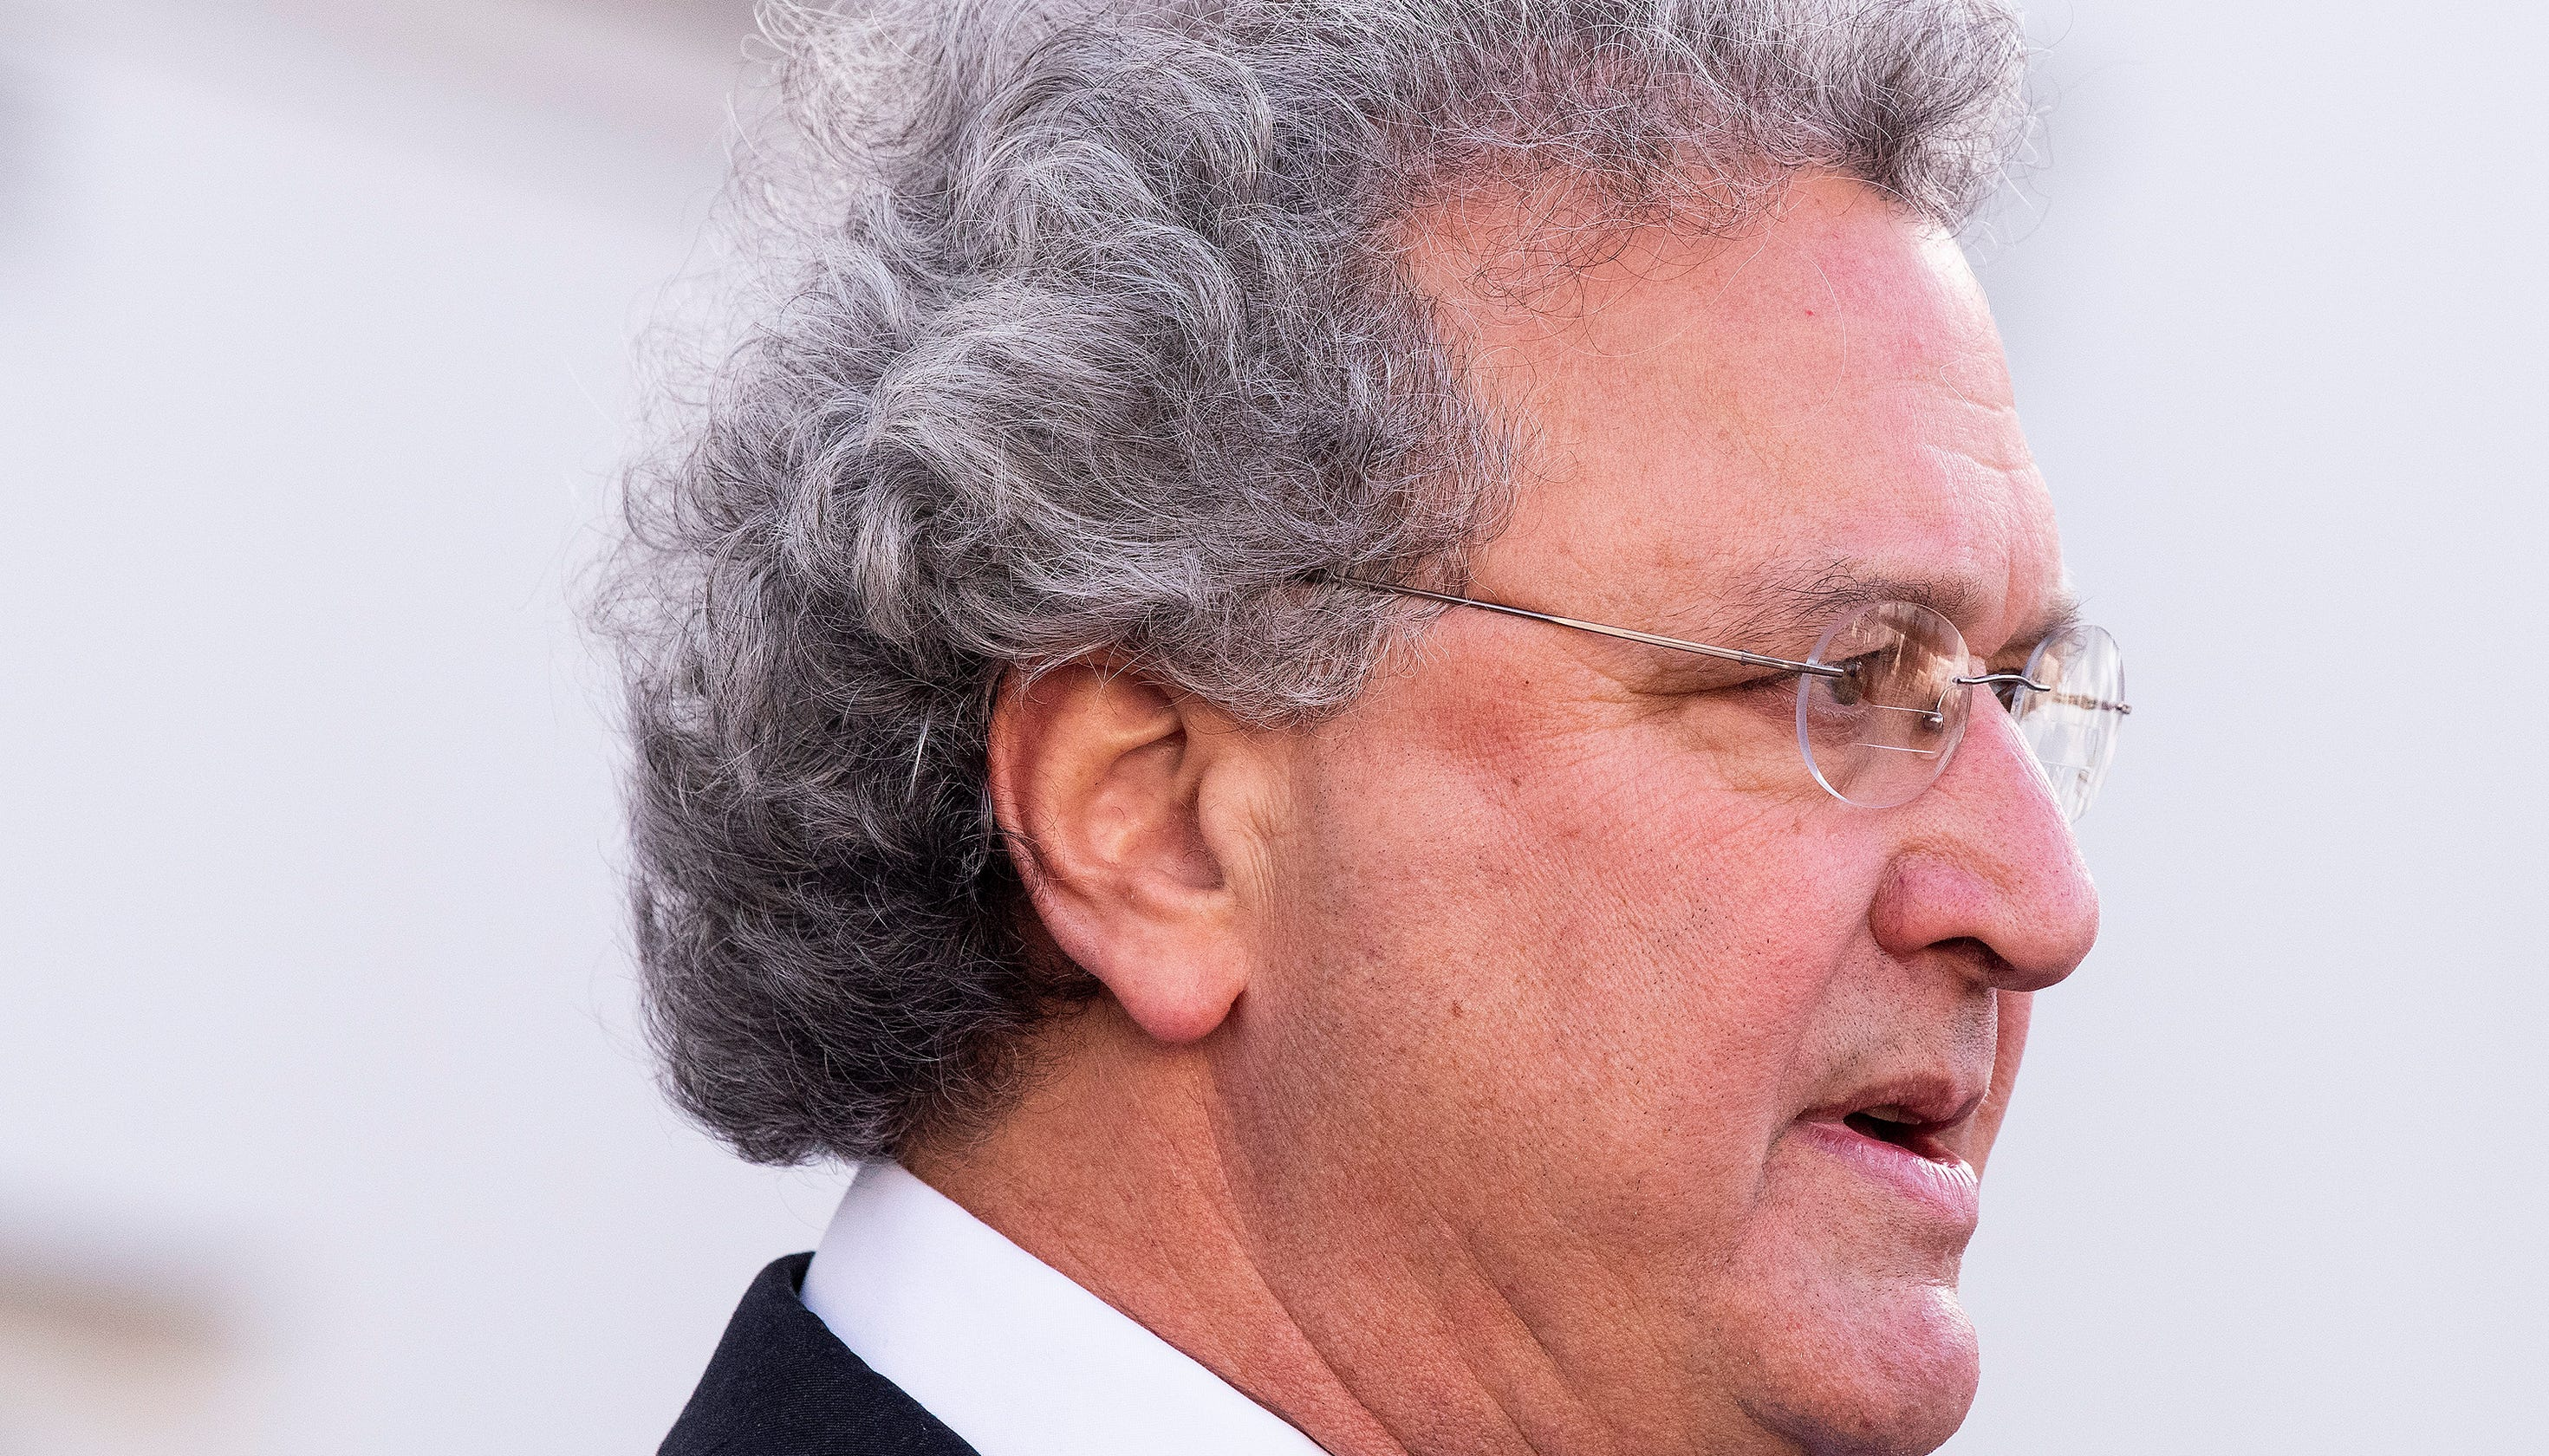 Southern Poverty Law Center President Richard Cohen to step down